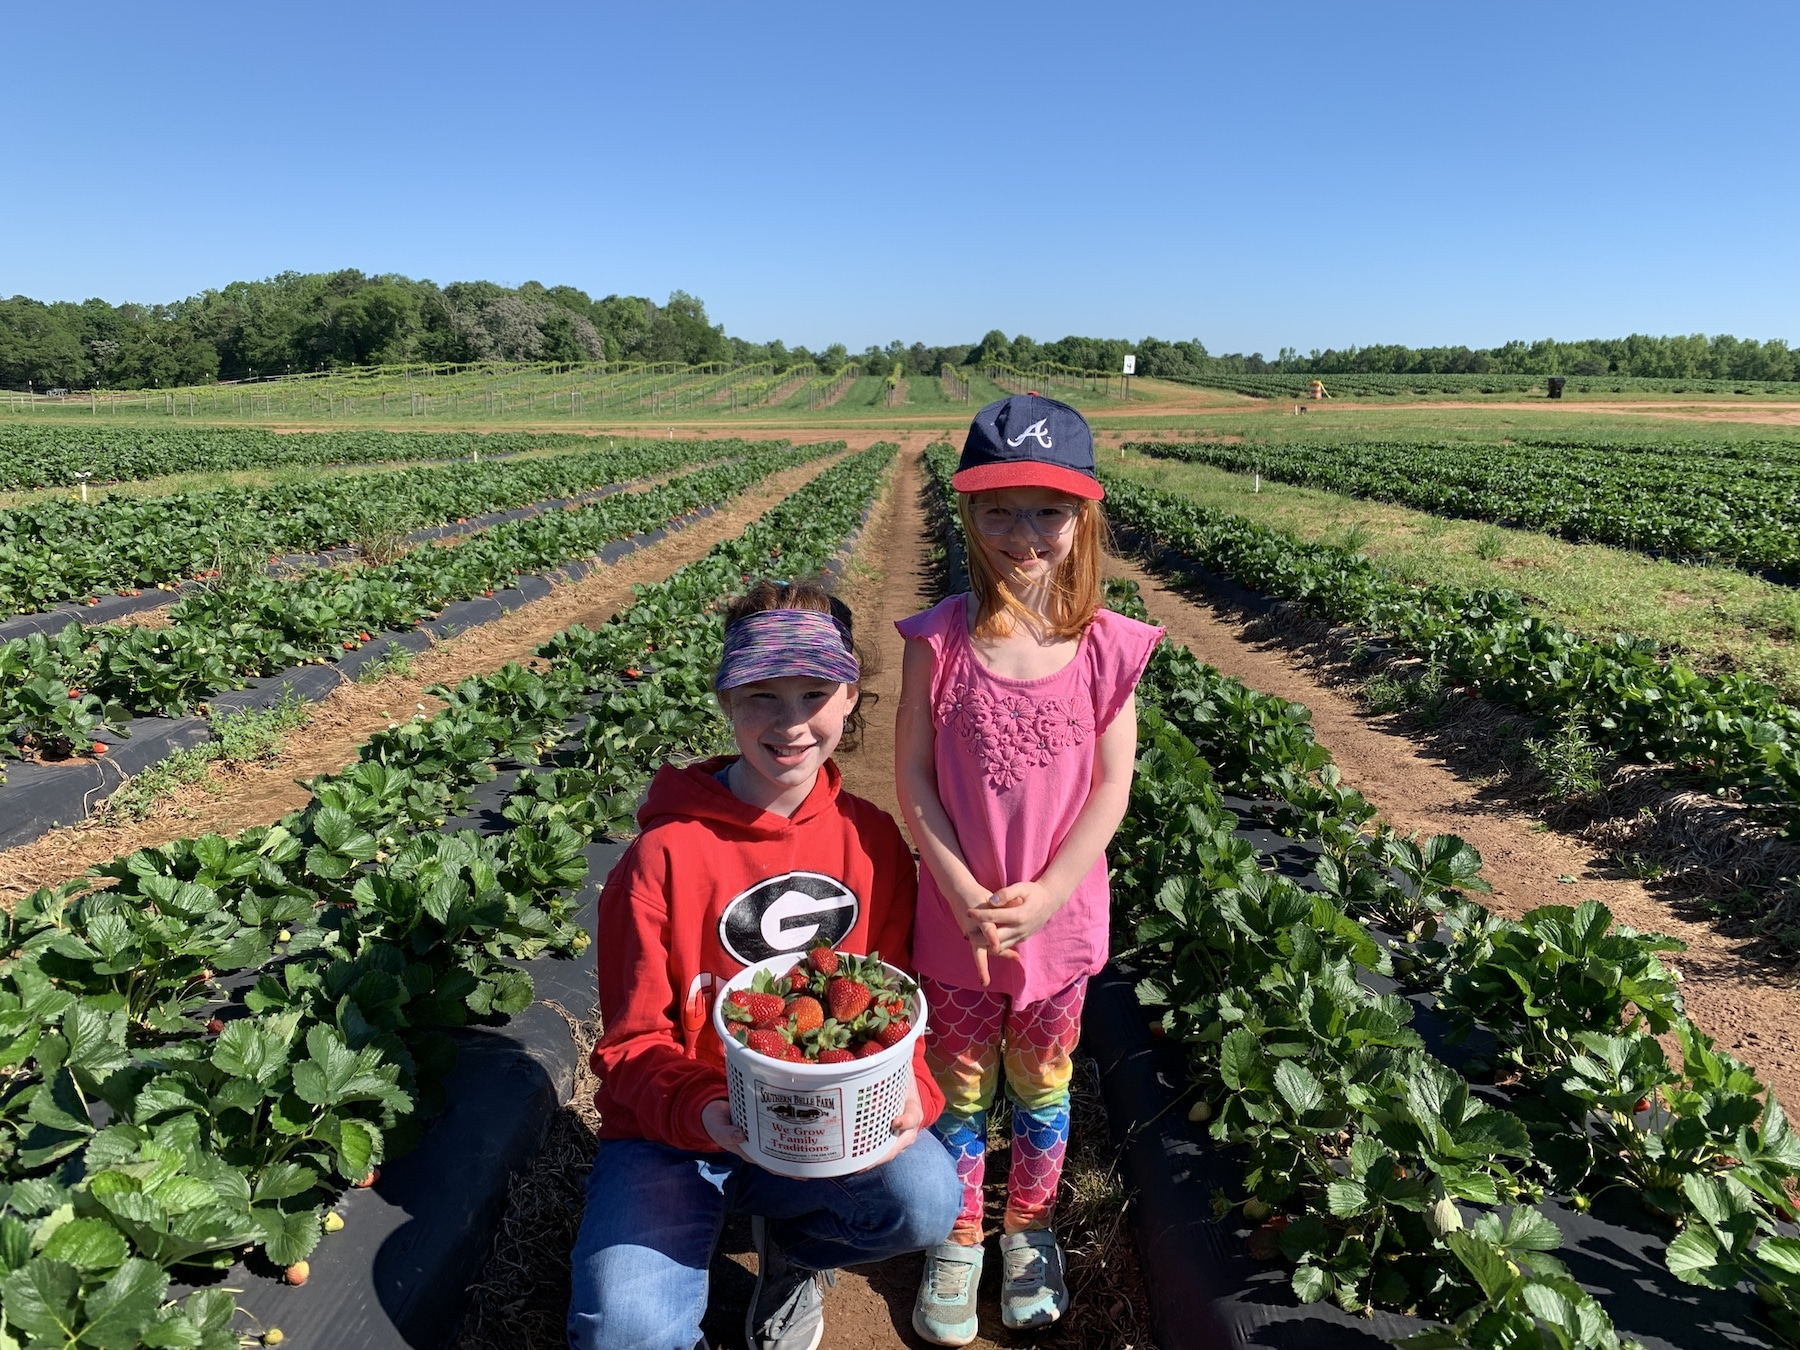 evensies strawberry picking